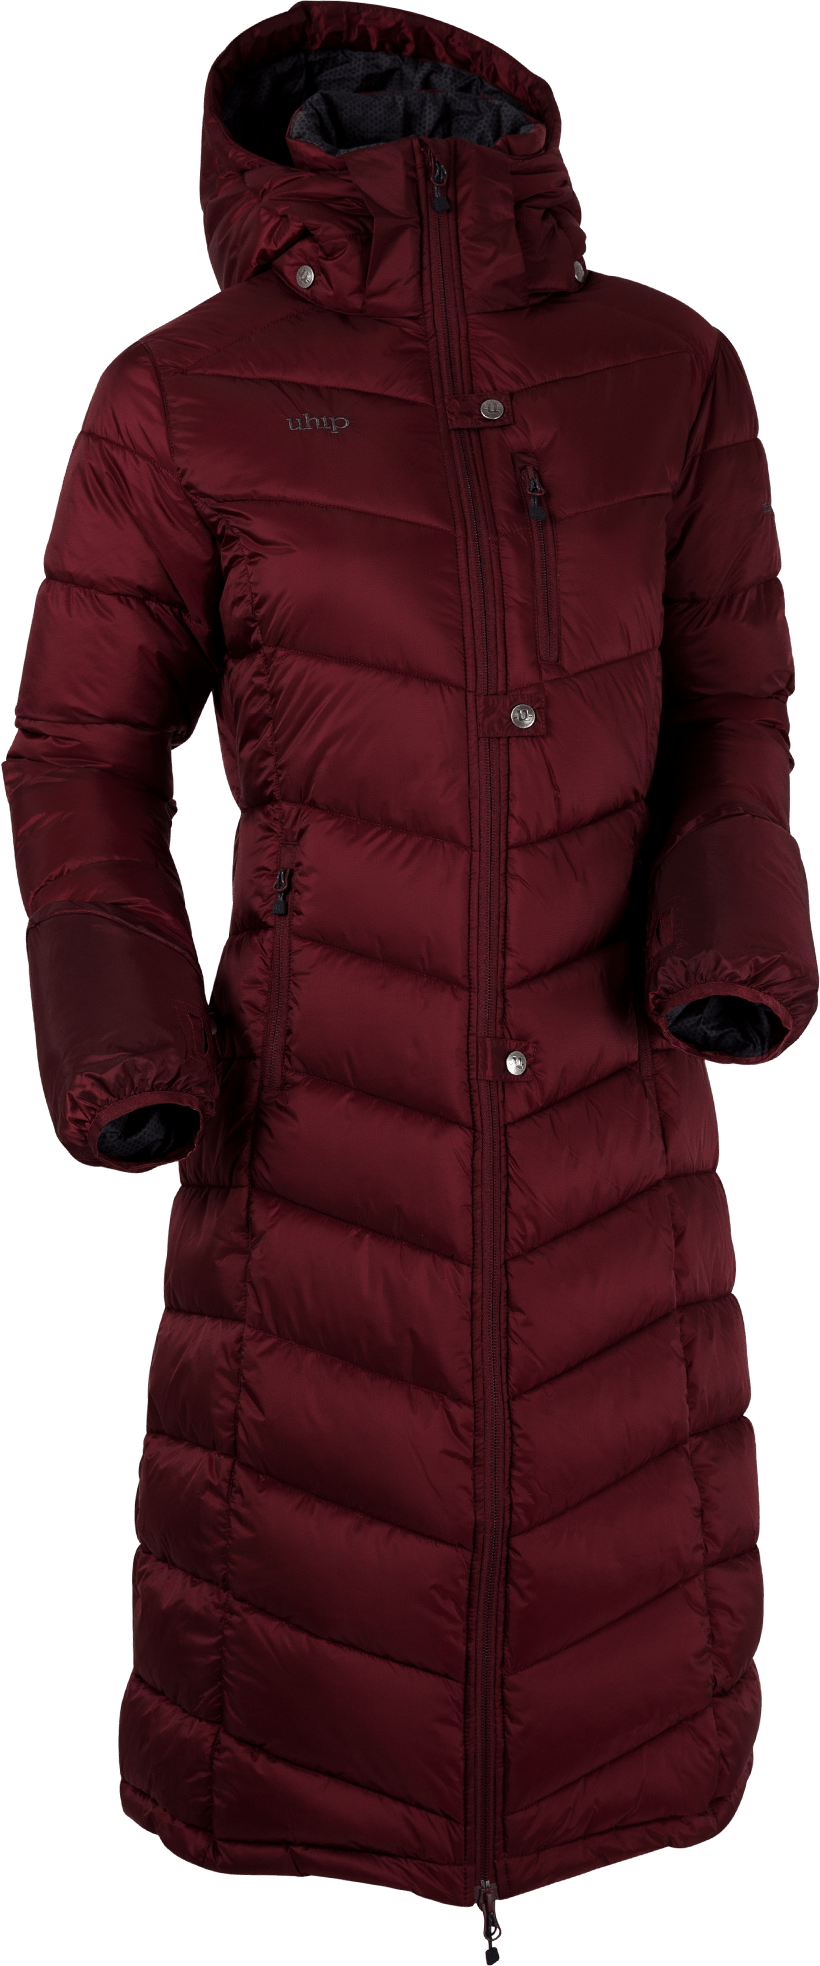 uhip_coat_nordic_zinfandel_red